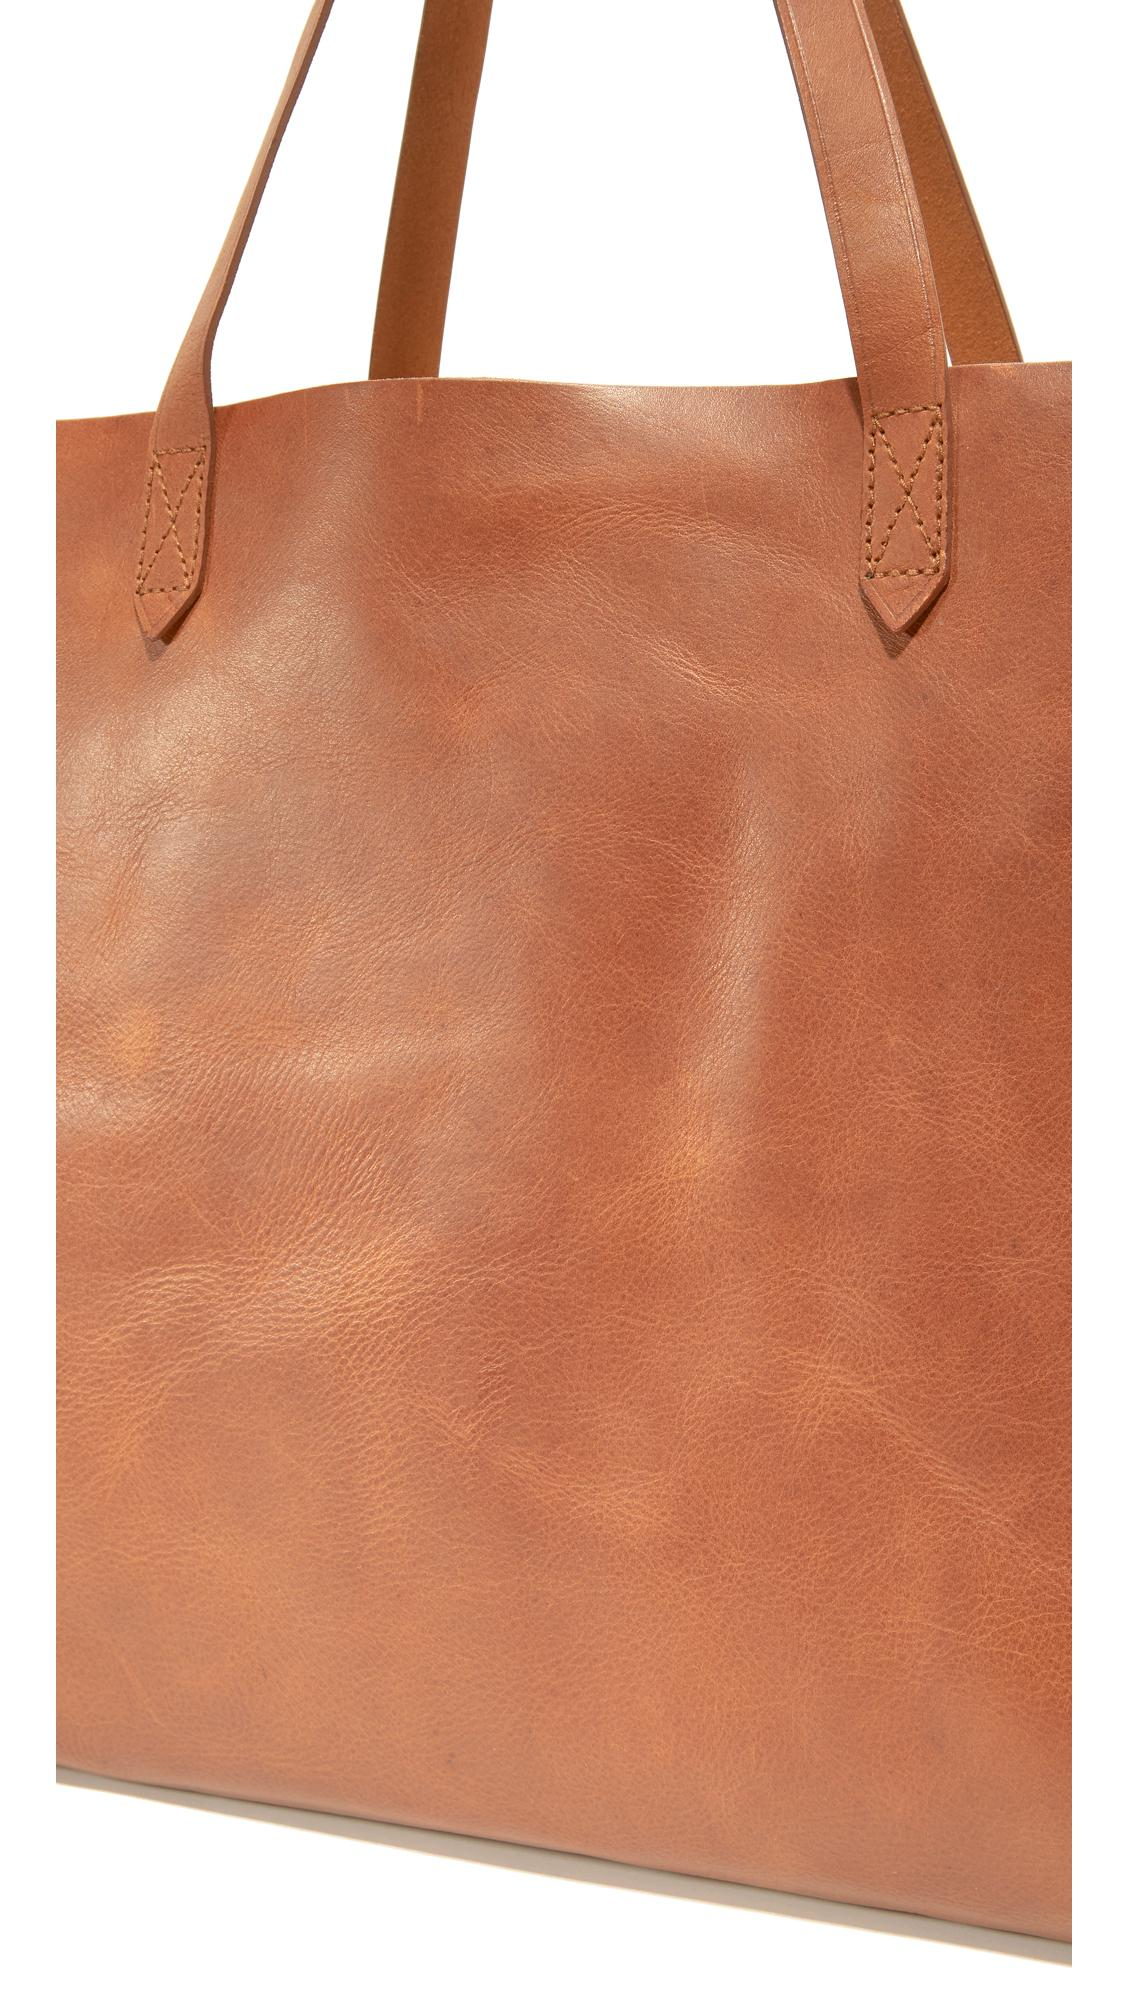 Madewell Leather East / West Transport Tote in Brown